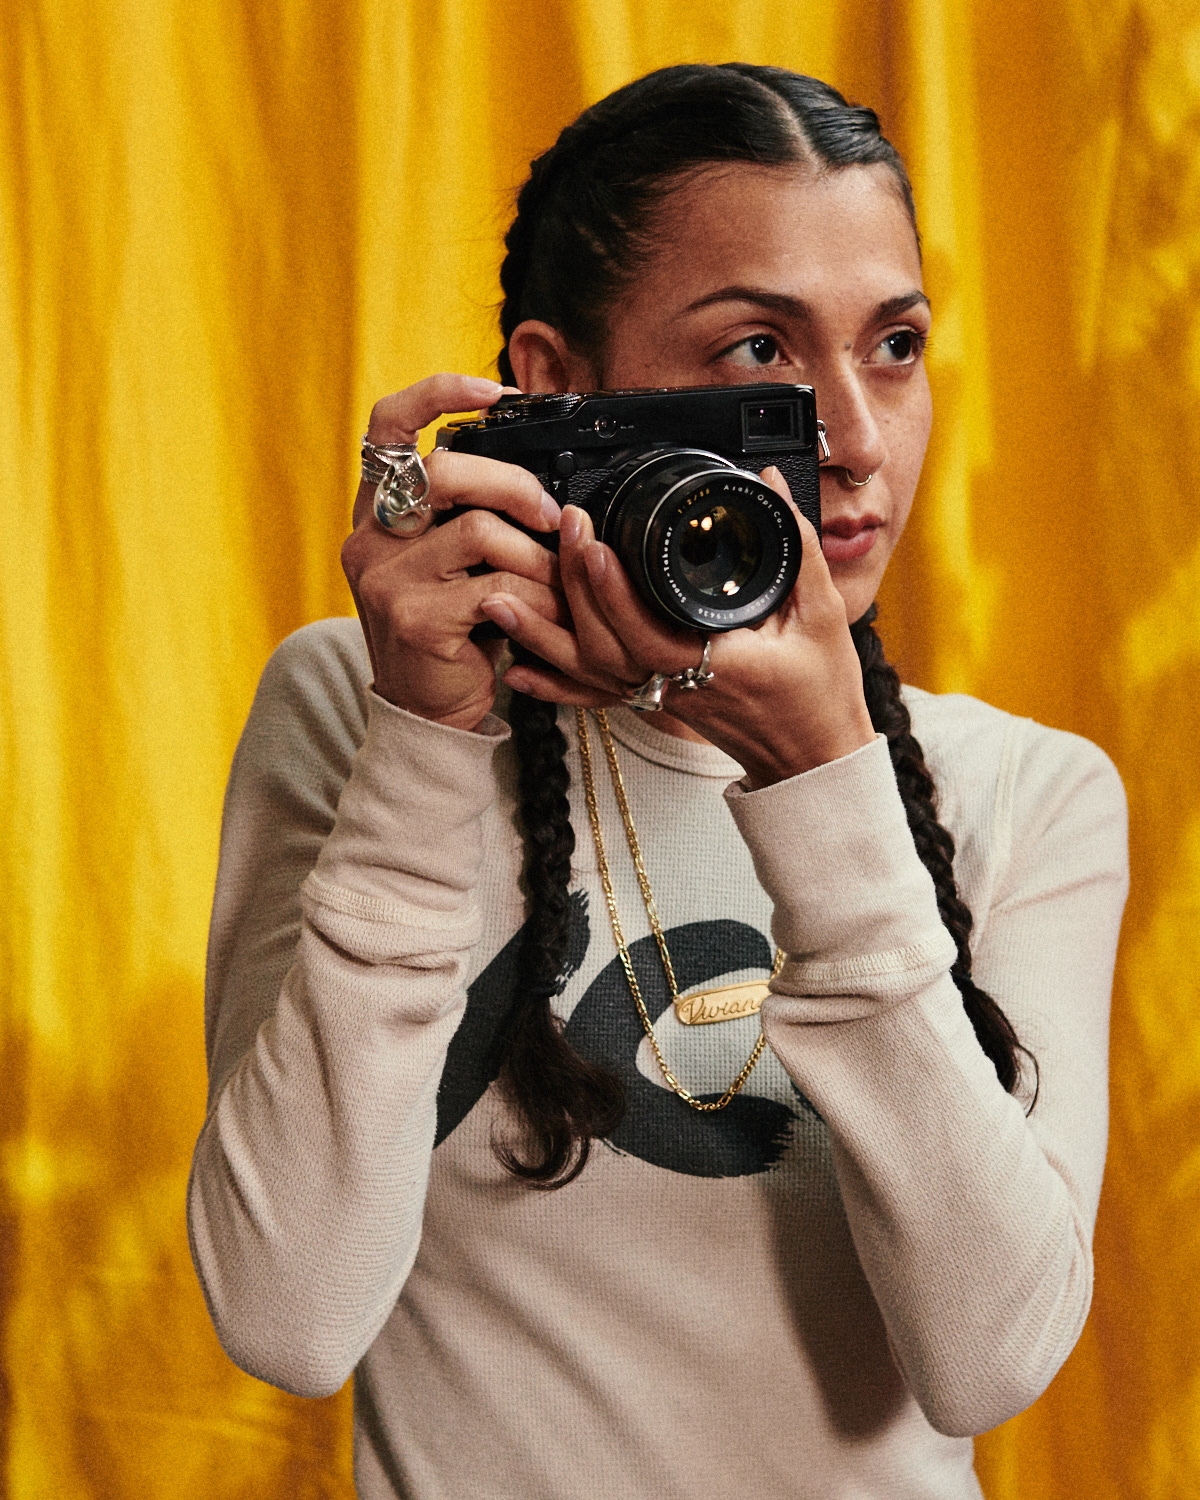 Hipster girl, holds up camera by yellow curtain by lifestyle photographer Tim Cole